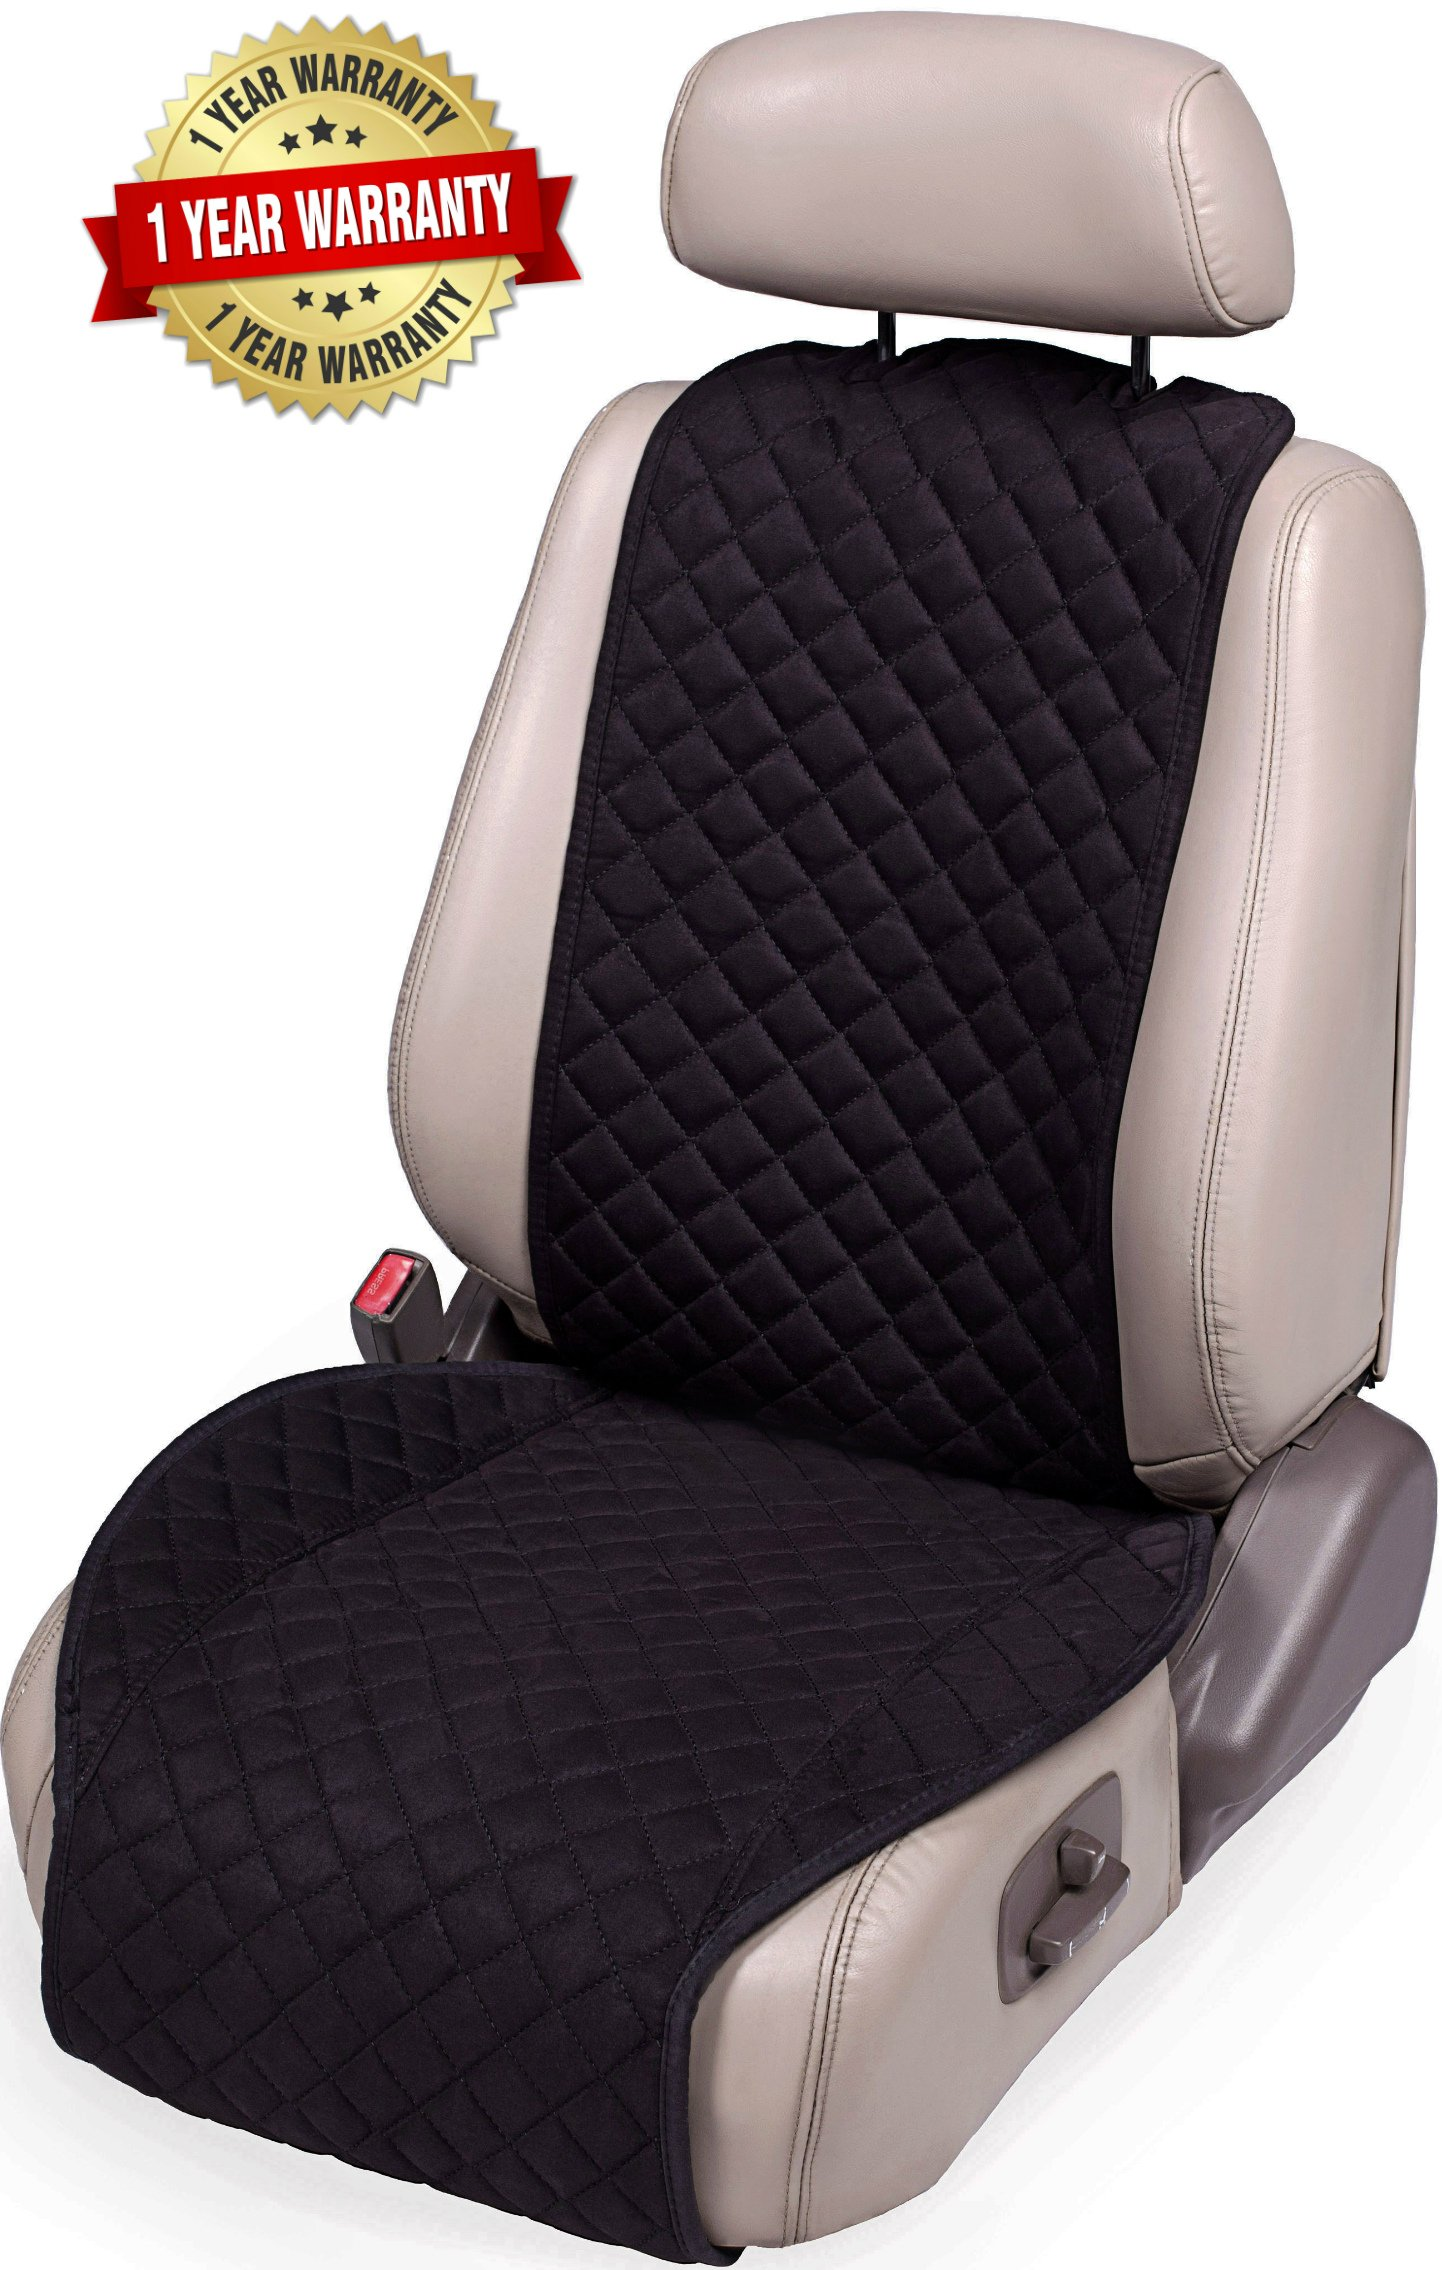 Car Driver Seat Cushion Luxury PU Leather Car Seat Protector Cover Pad Mat for Car Interior Decorate Red-Black Dealpeak